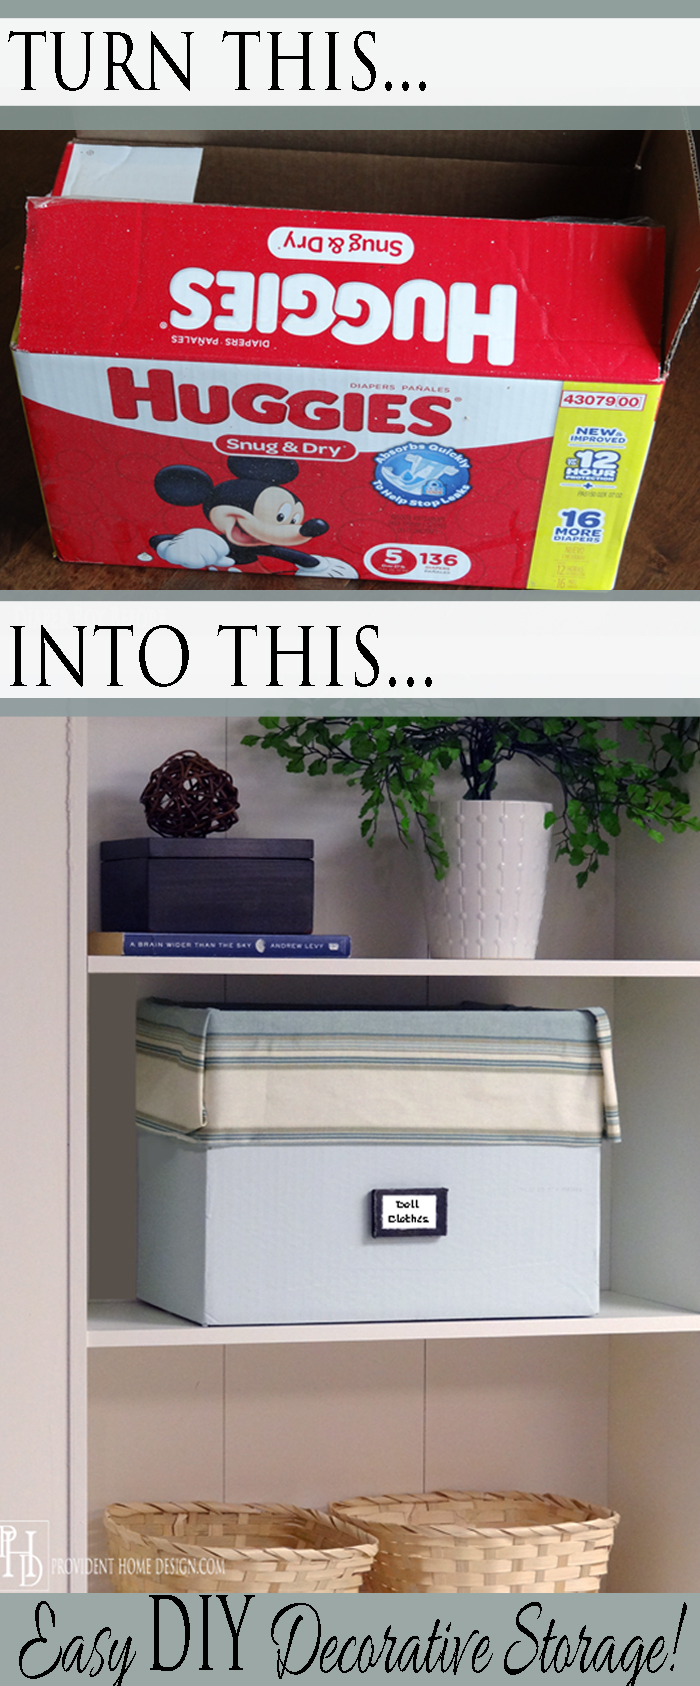 Easy DIY Decorative Storage